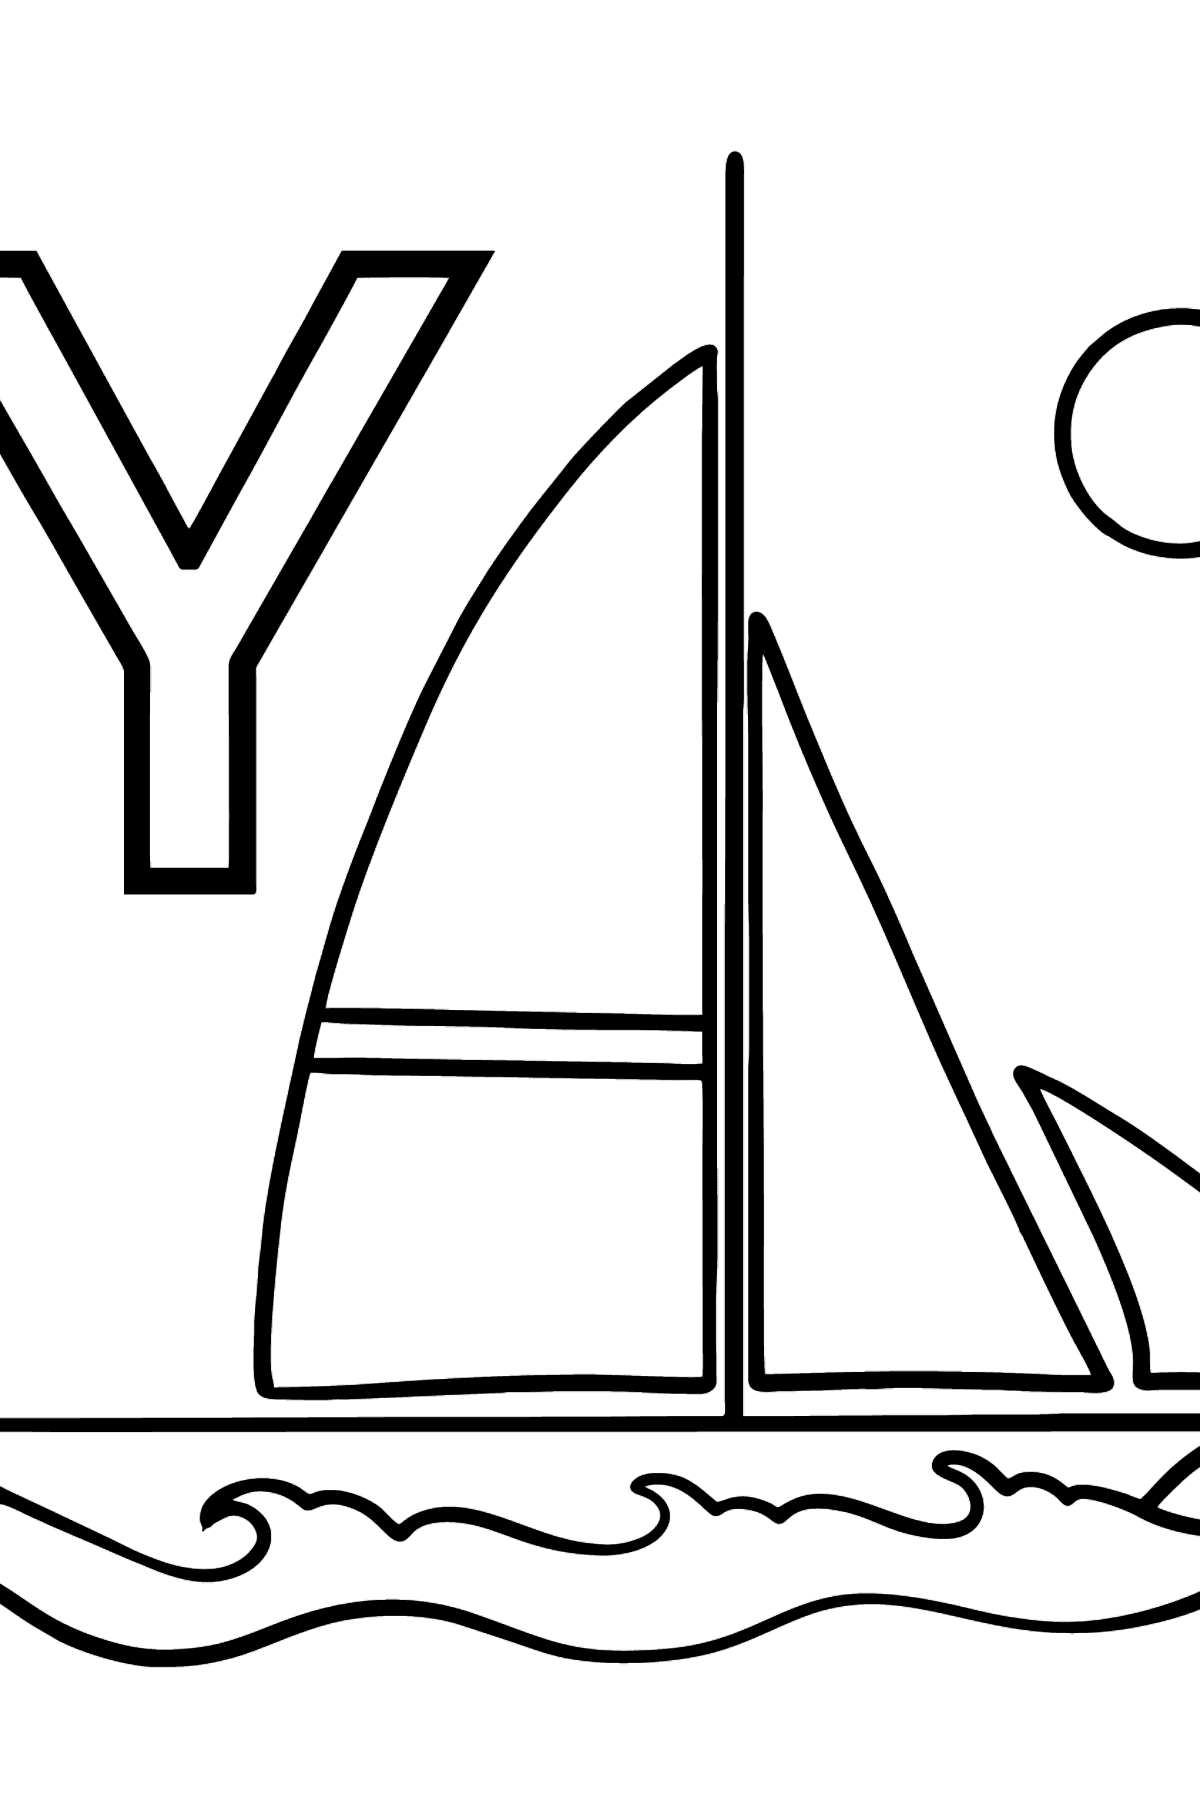 French Letter Y coloring pages - YACHT - Coloring Pages for Kids